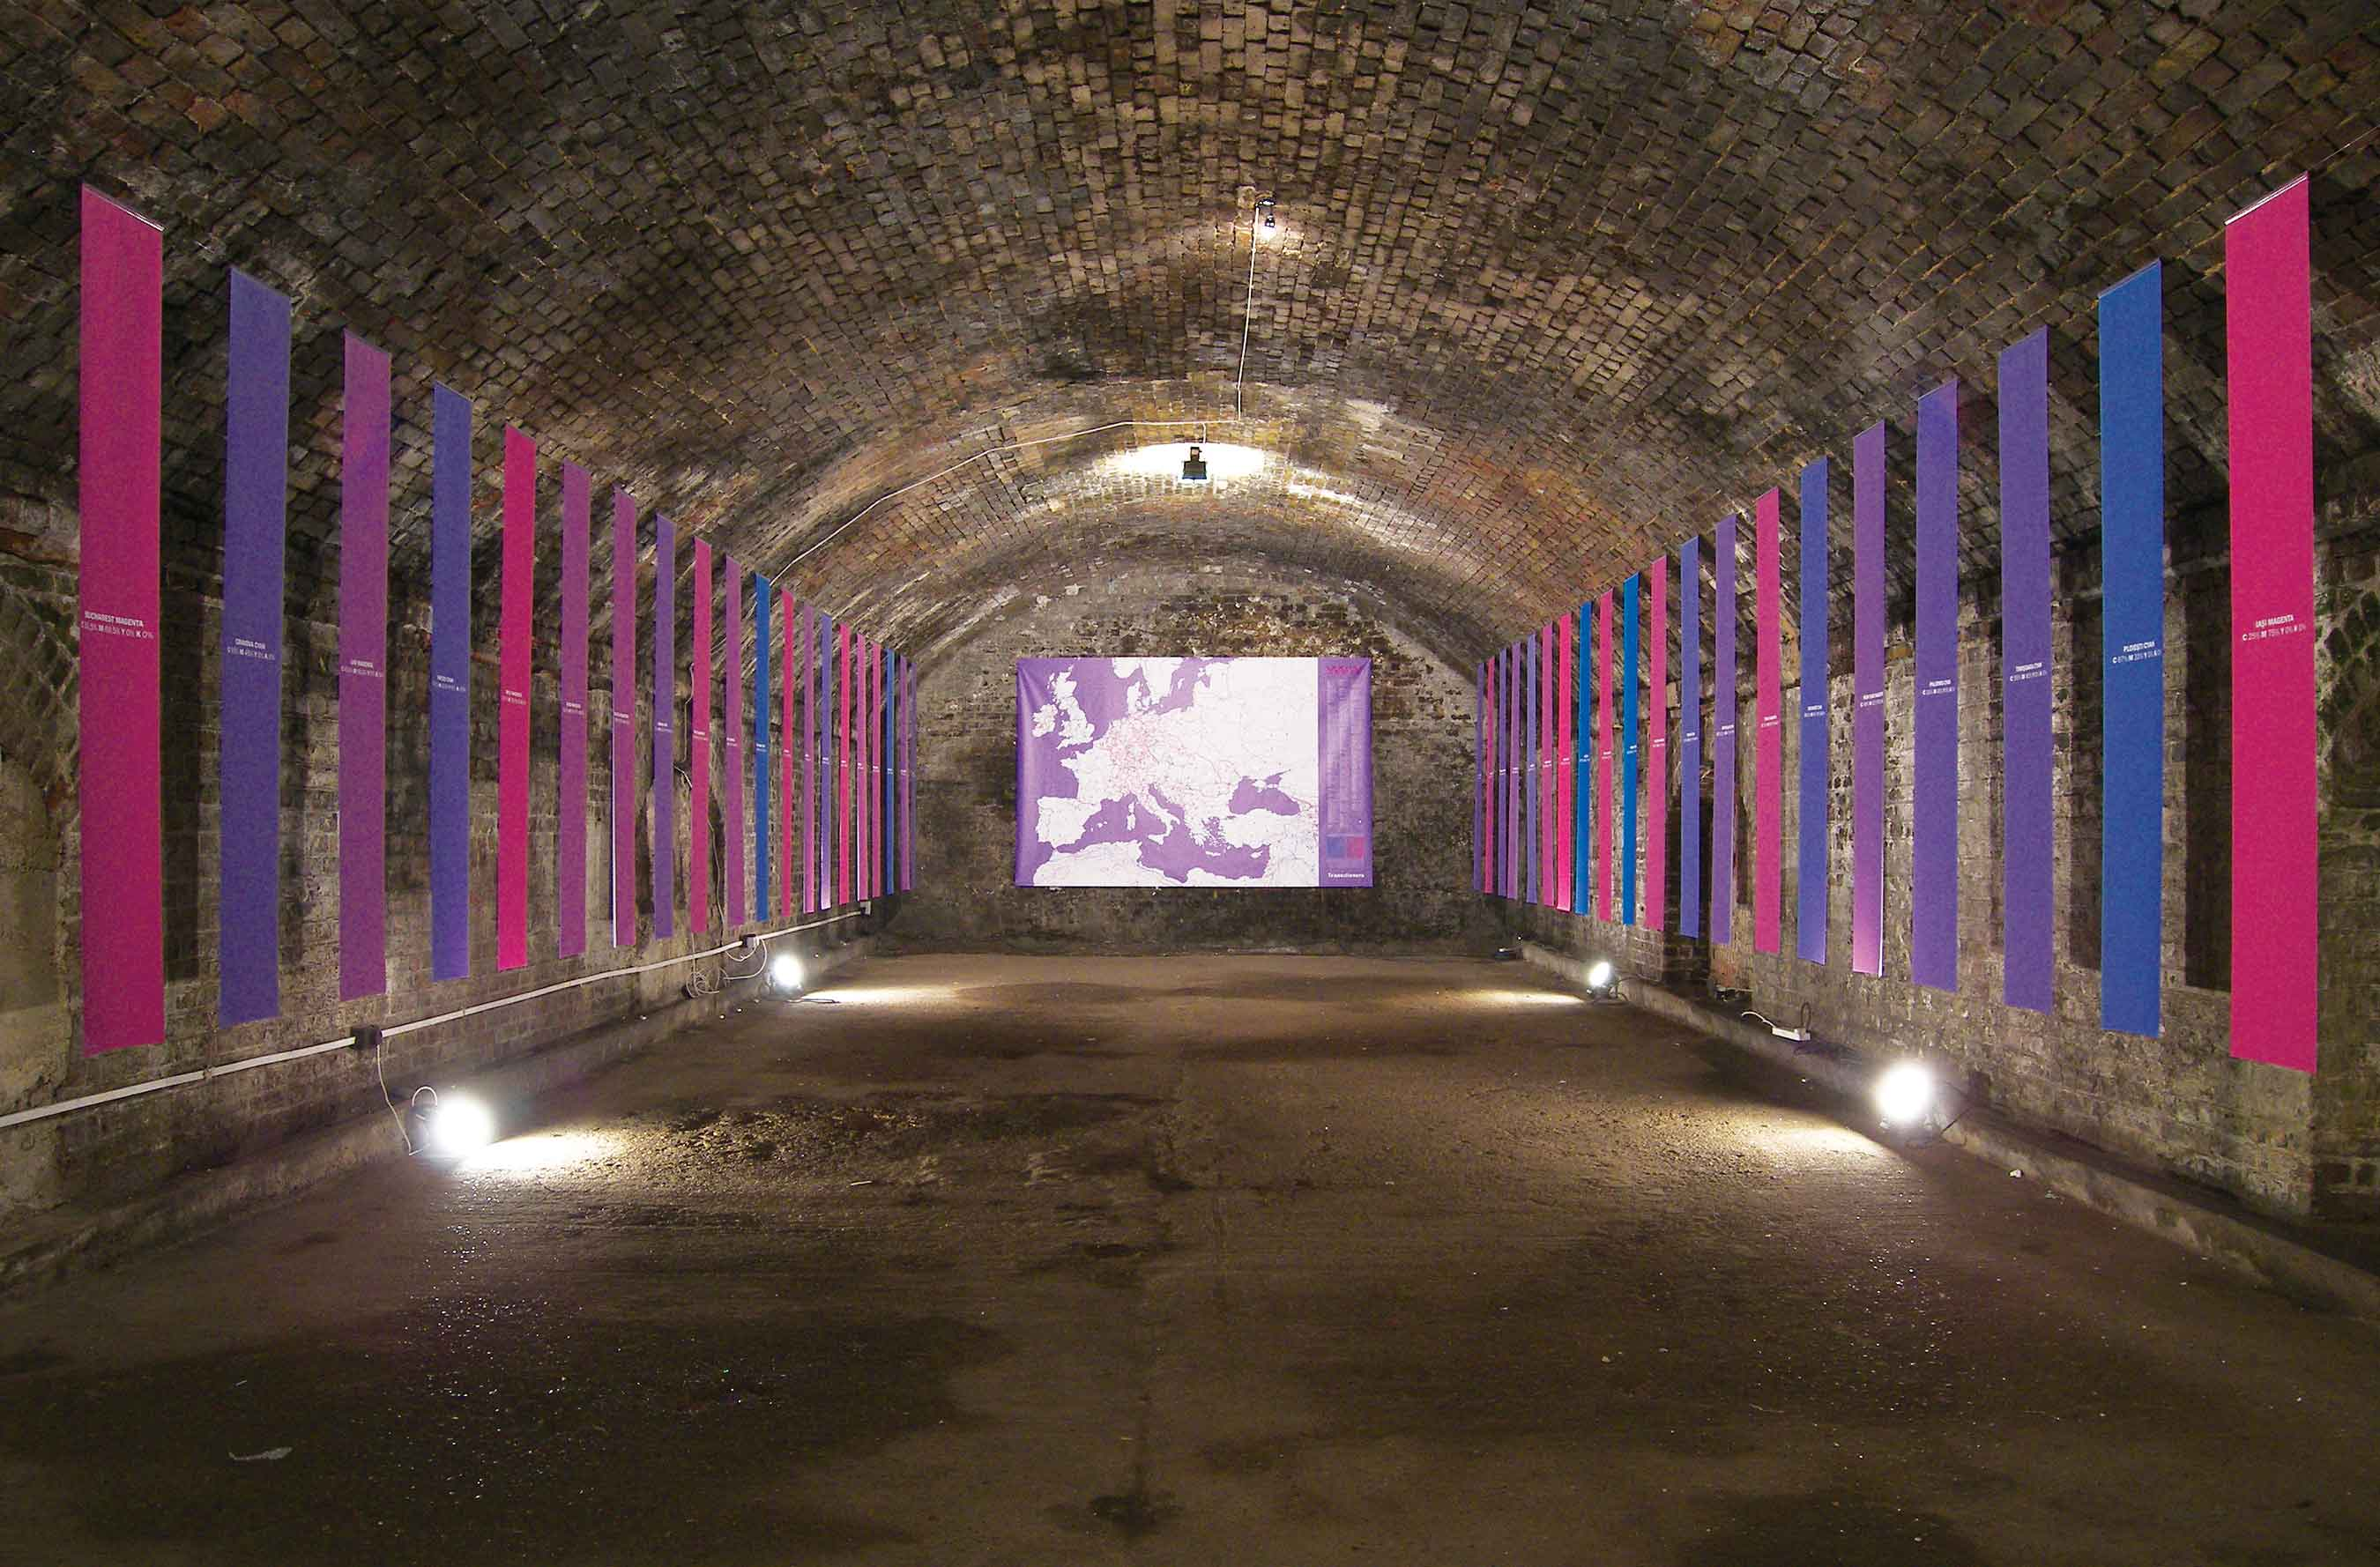 Société Réaliste, Transitioners: London View, 2009, digital prints. Installation view, Hold & Freight, London, 2009. © Société Réaliste. Photo: Société Réaliste.